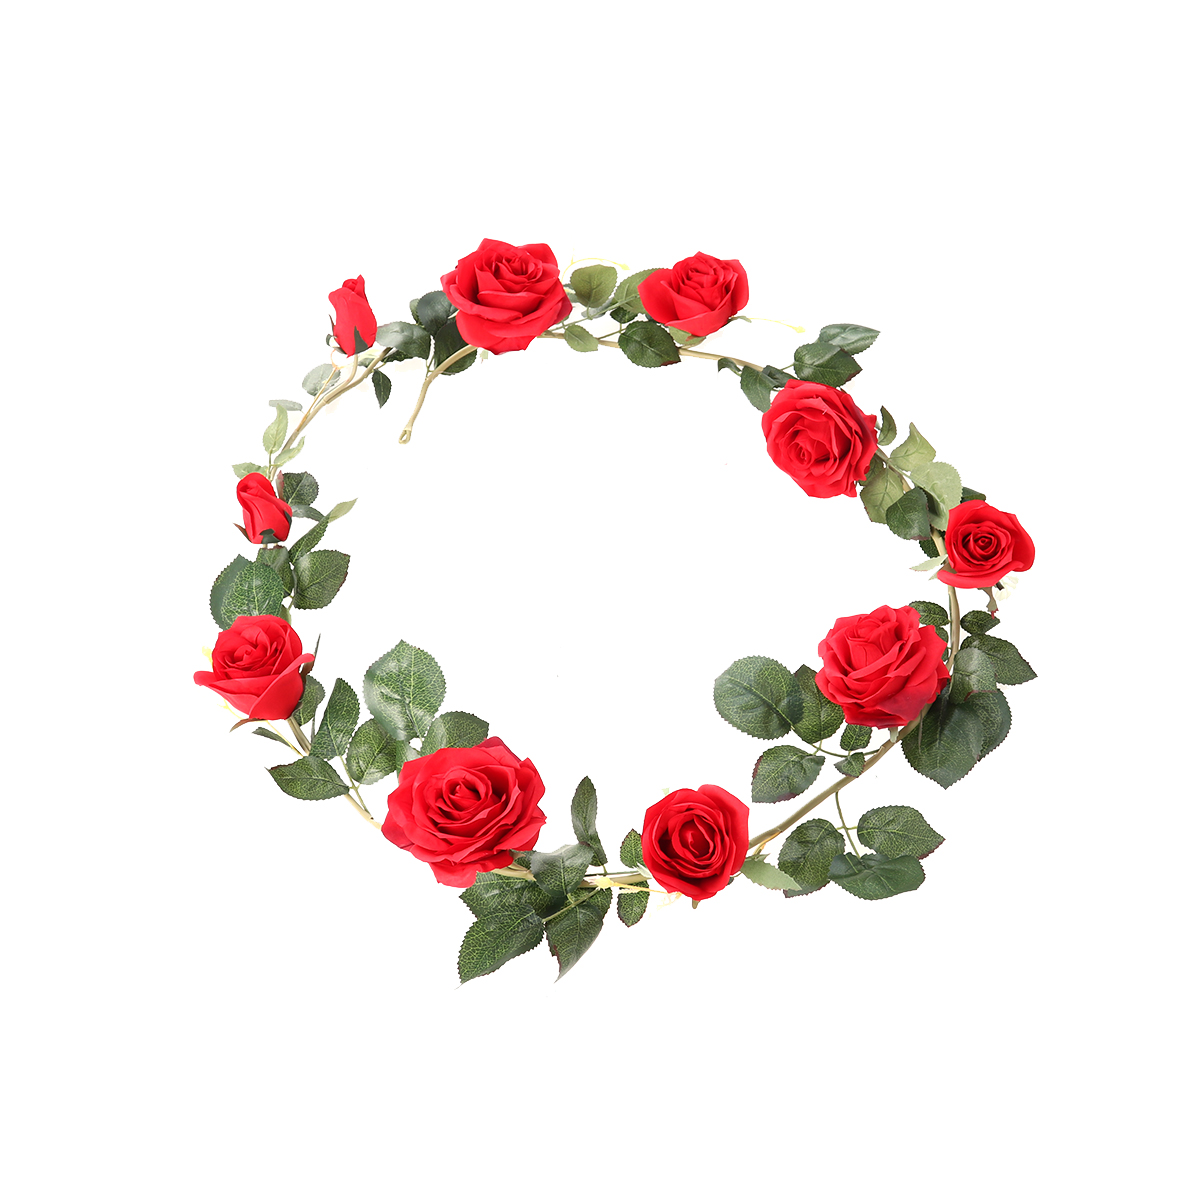 Fake Rose Vine Floral Flowers Artificial Garland Vines for Balcony Engagement Garden Wedding Party Home Decor